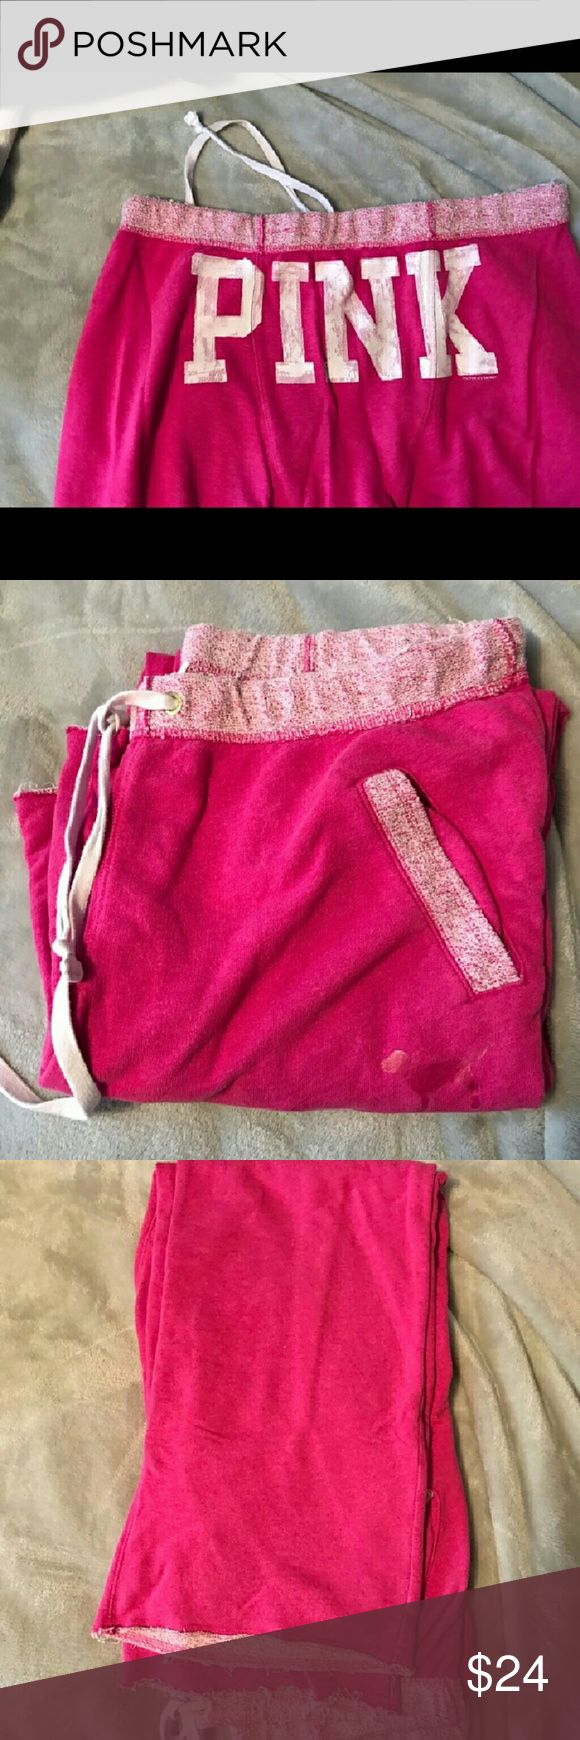 Victoria's Secret boyfriend sweatpants Victoria's Secret PINK boyfriend sweatpants. Size is large, in very good shape w/ minimum pilling etc. Color is hot pink with light pink waistband and matching trim on pockets. PINK logo on the but. These have a raw edge hem to make as long or short as you need. Victoria's Secret Pants Track Pants & Joggers